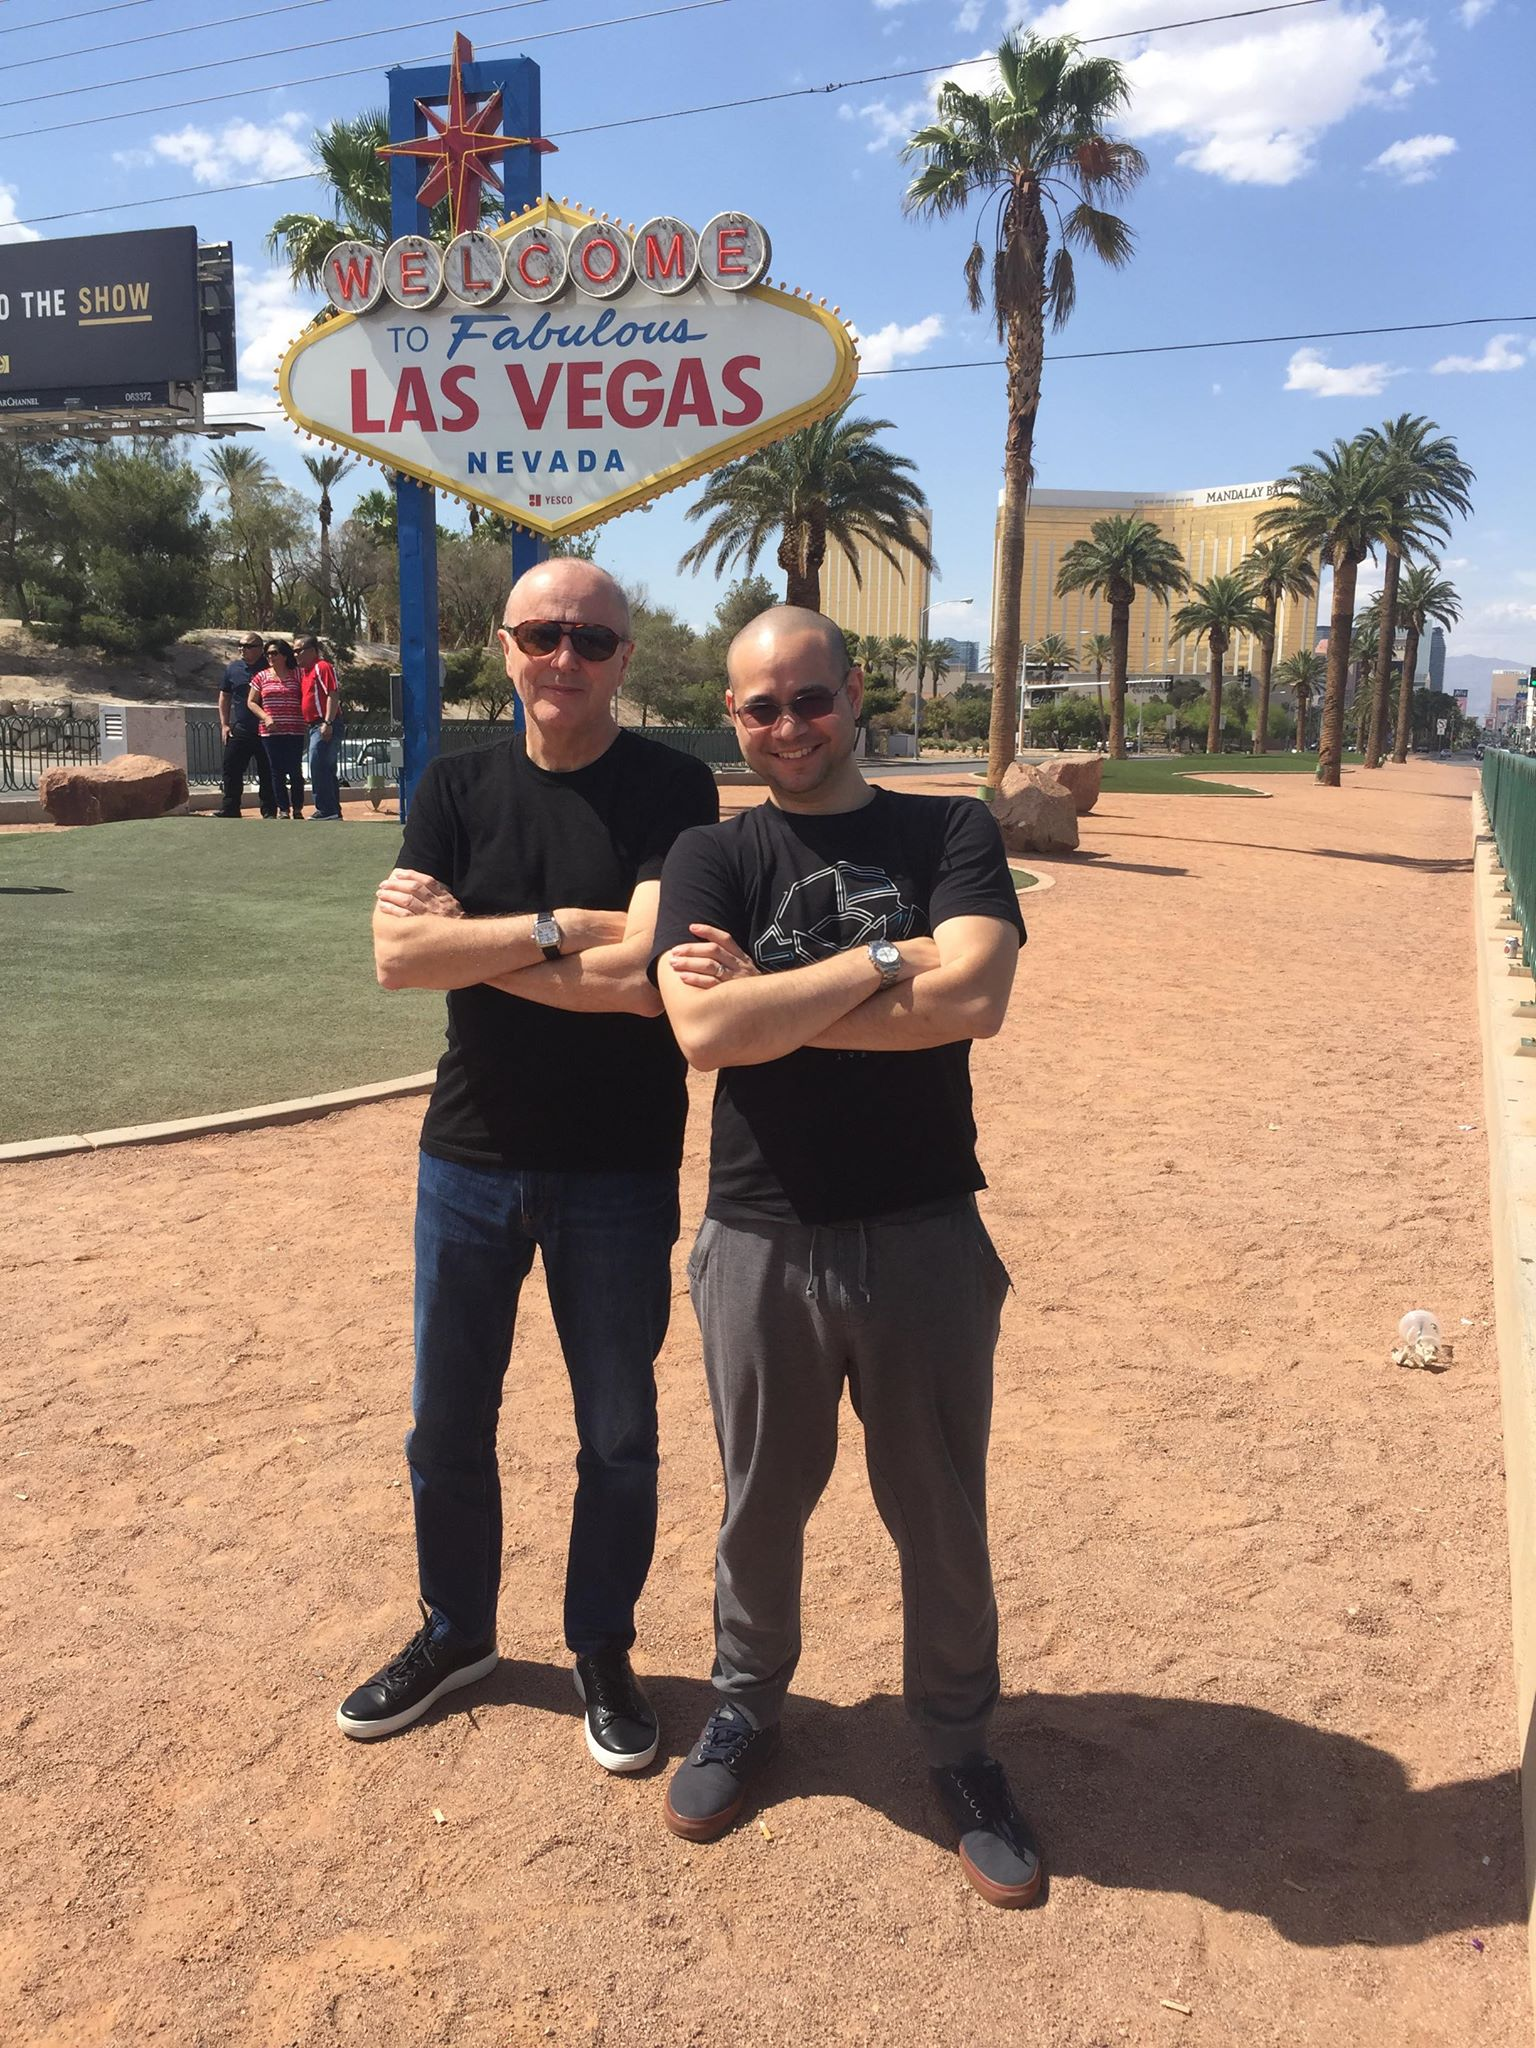 Welcome to Las Vegas, Alex and John!